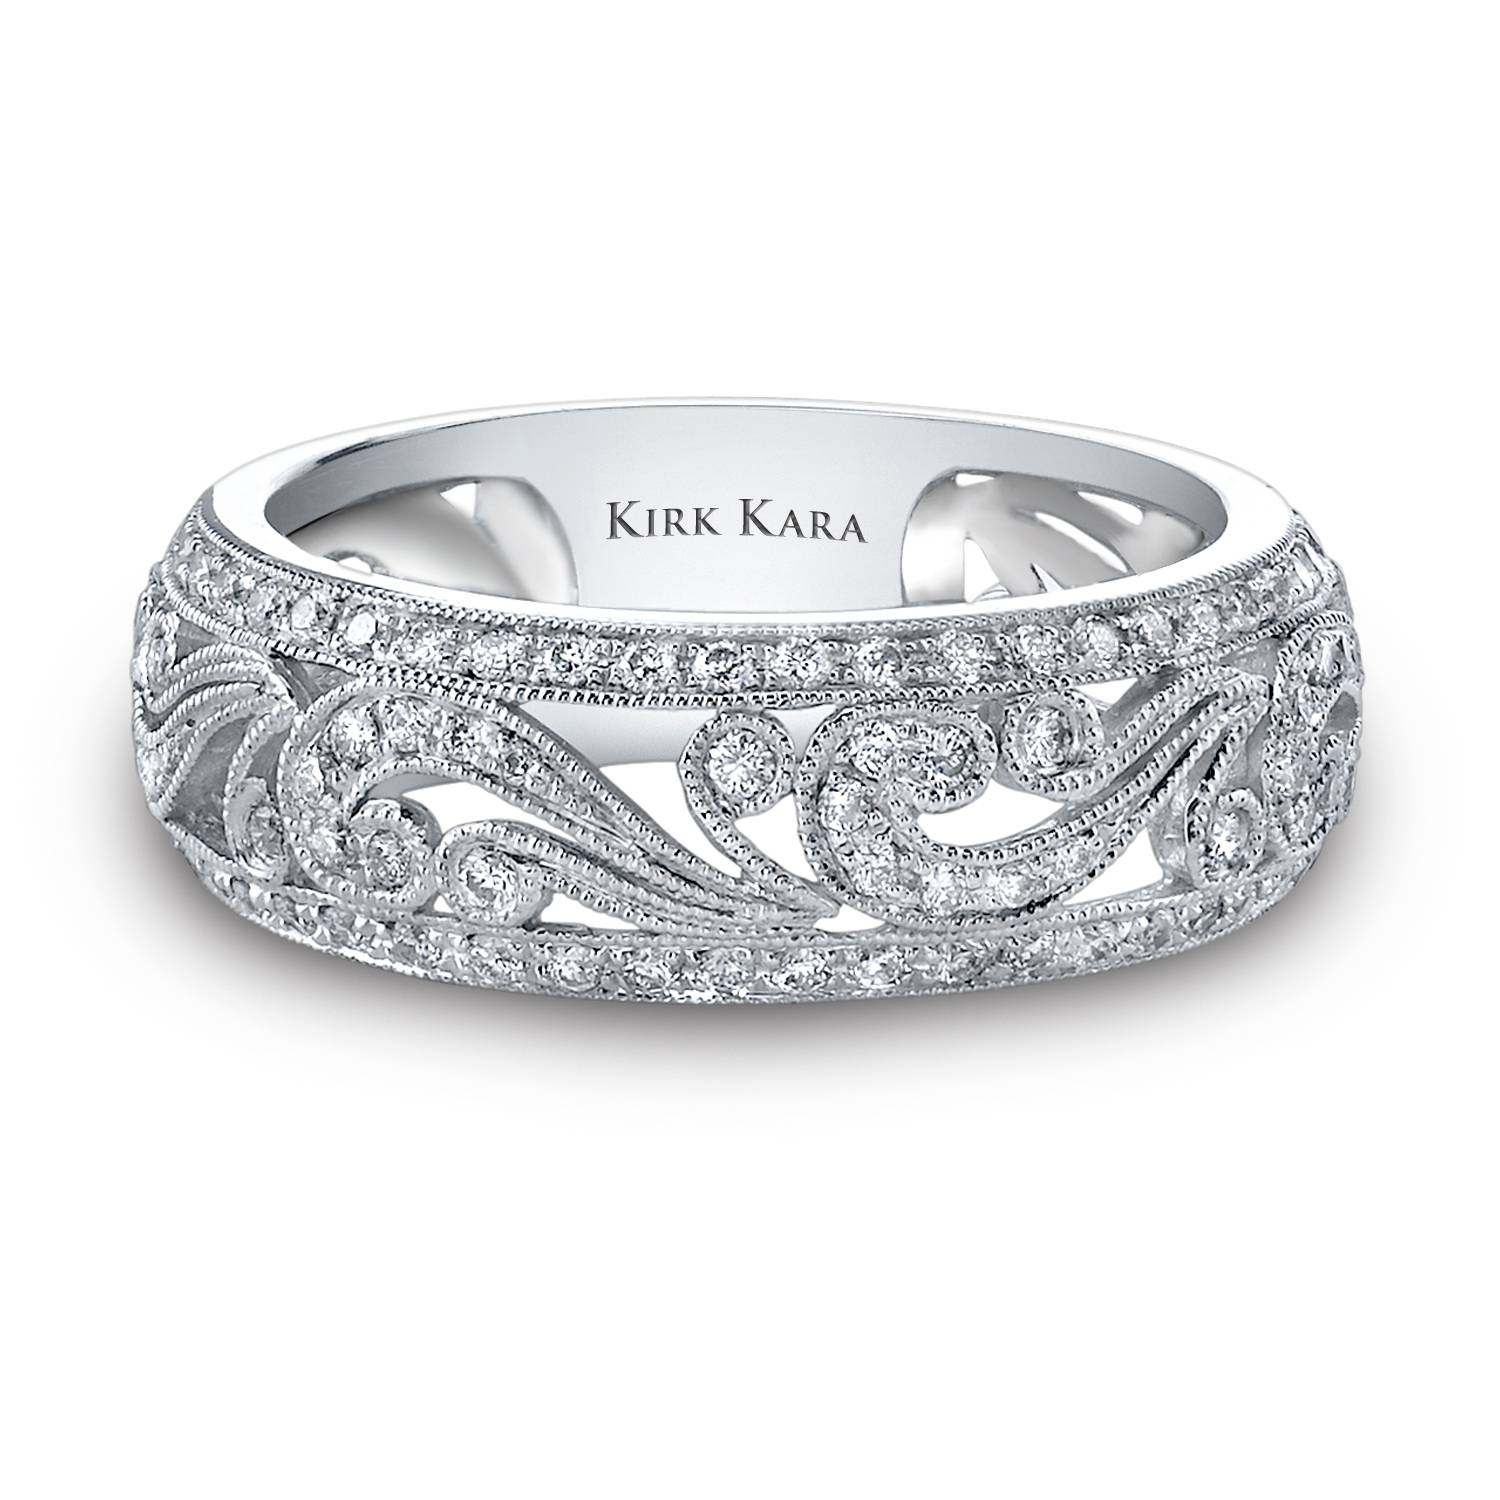 Engagement Rings : Awesome Engagement Ring Band Awesome Wedding With Regard To Engagement Rings With Bands (View 3 of 15)